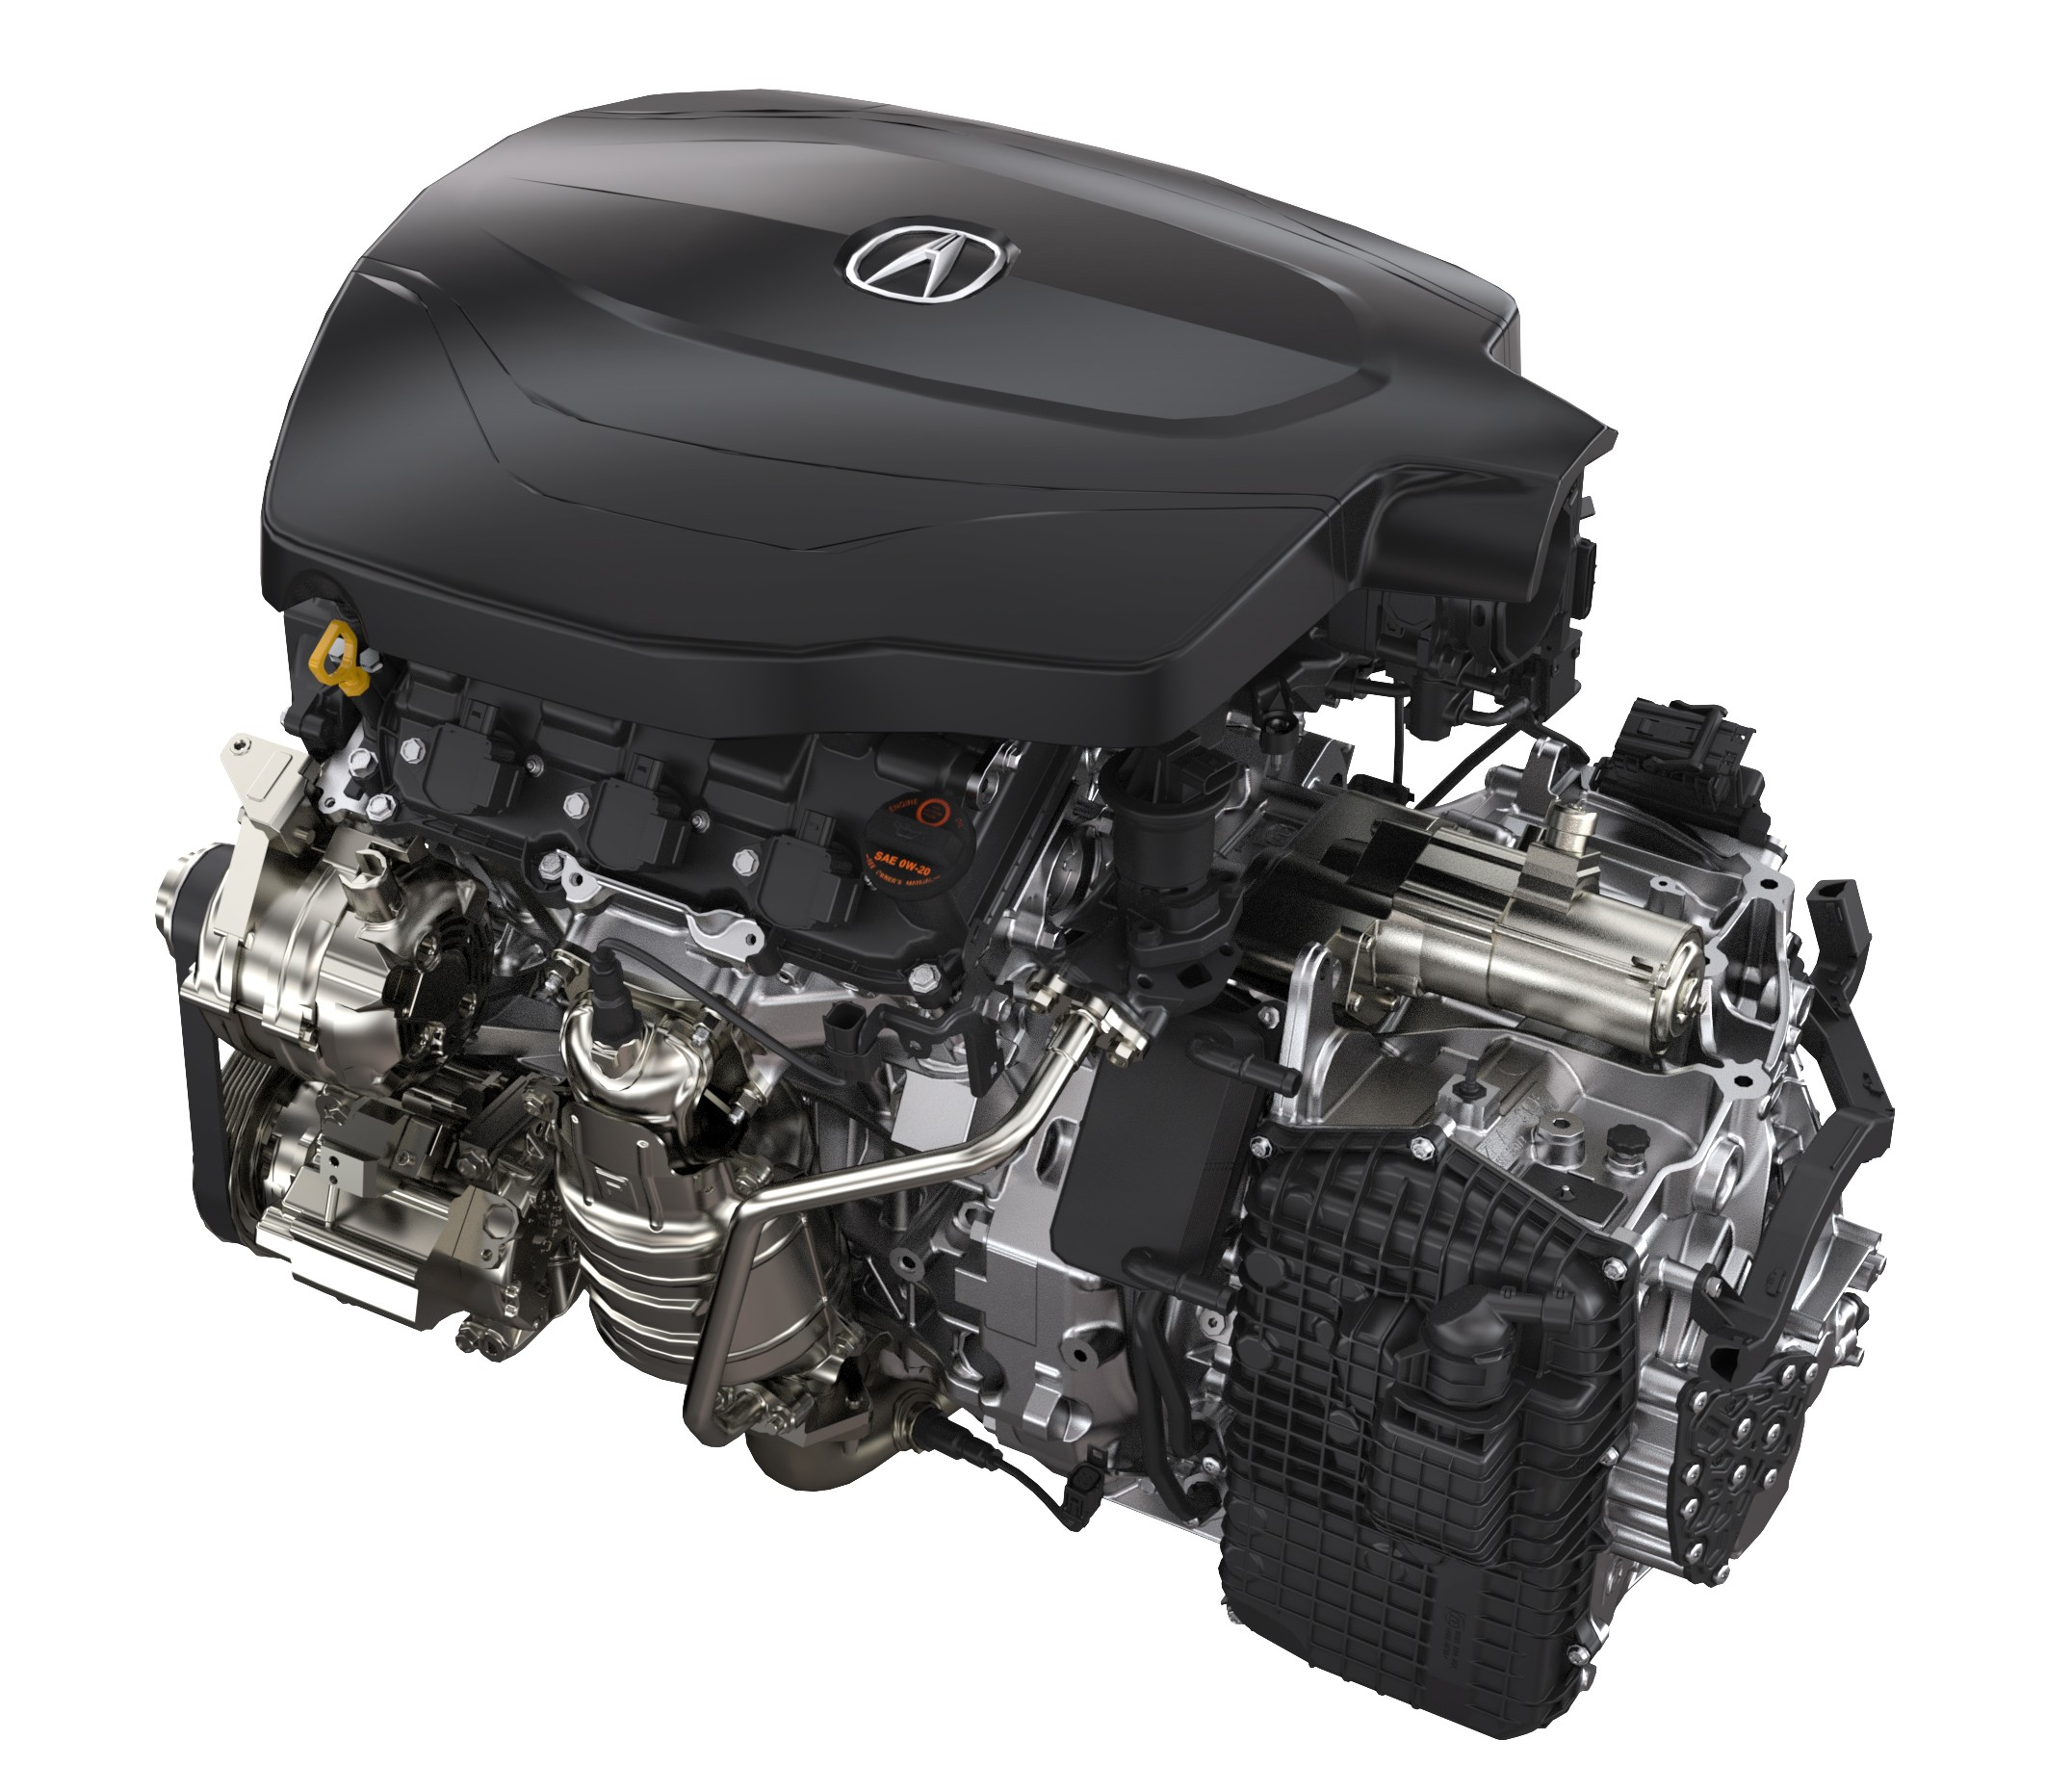 2015 Acura TLX Taking The Fight To Infiniti And Lexus